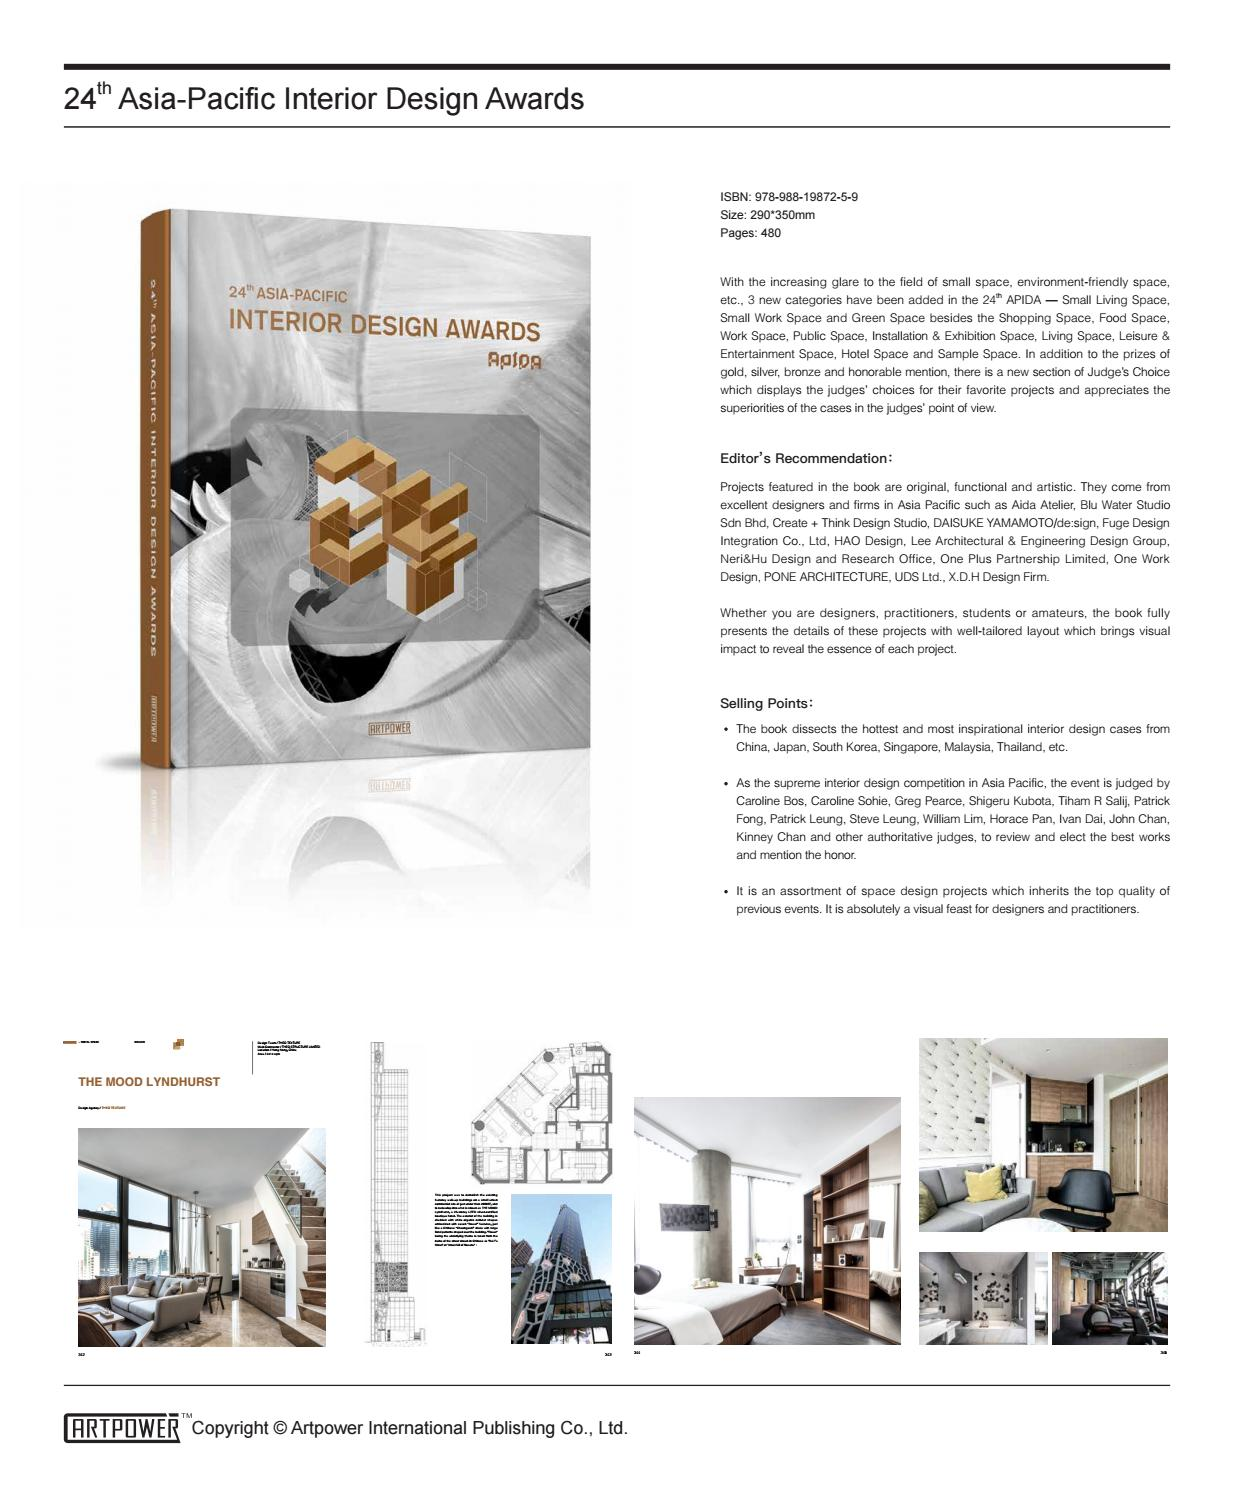 24th Asia Pacific Interior Design Awards By Artpower Publishing